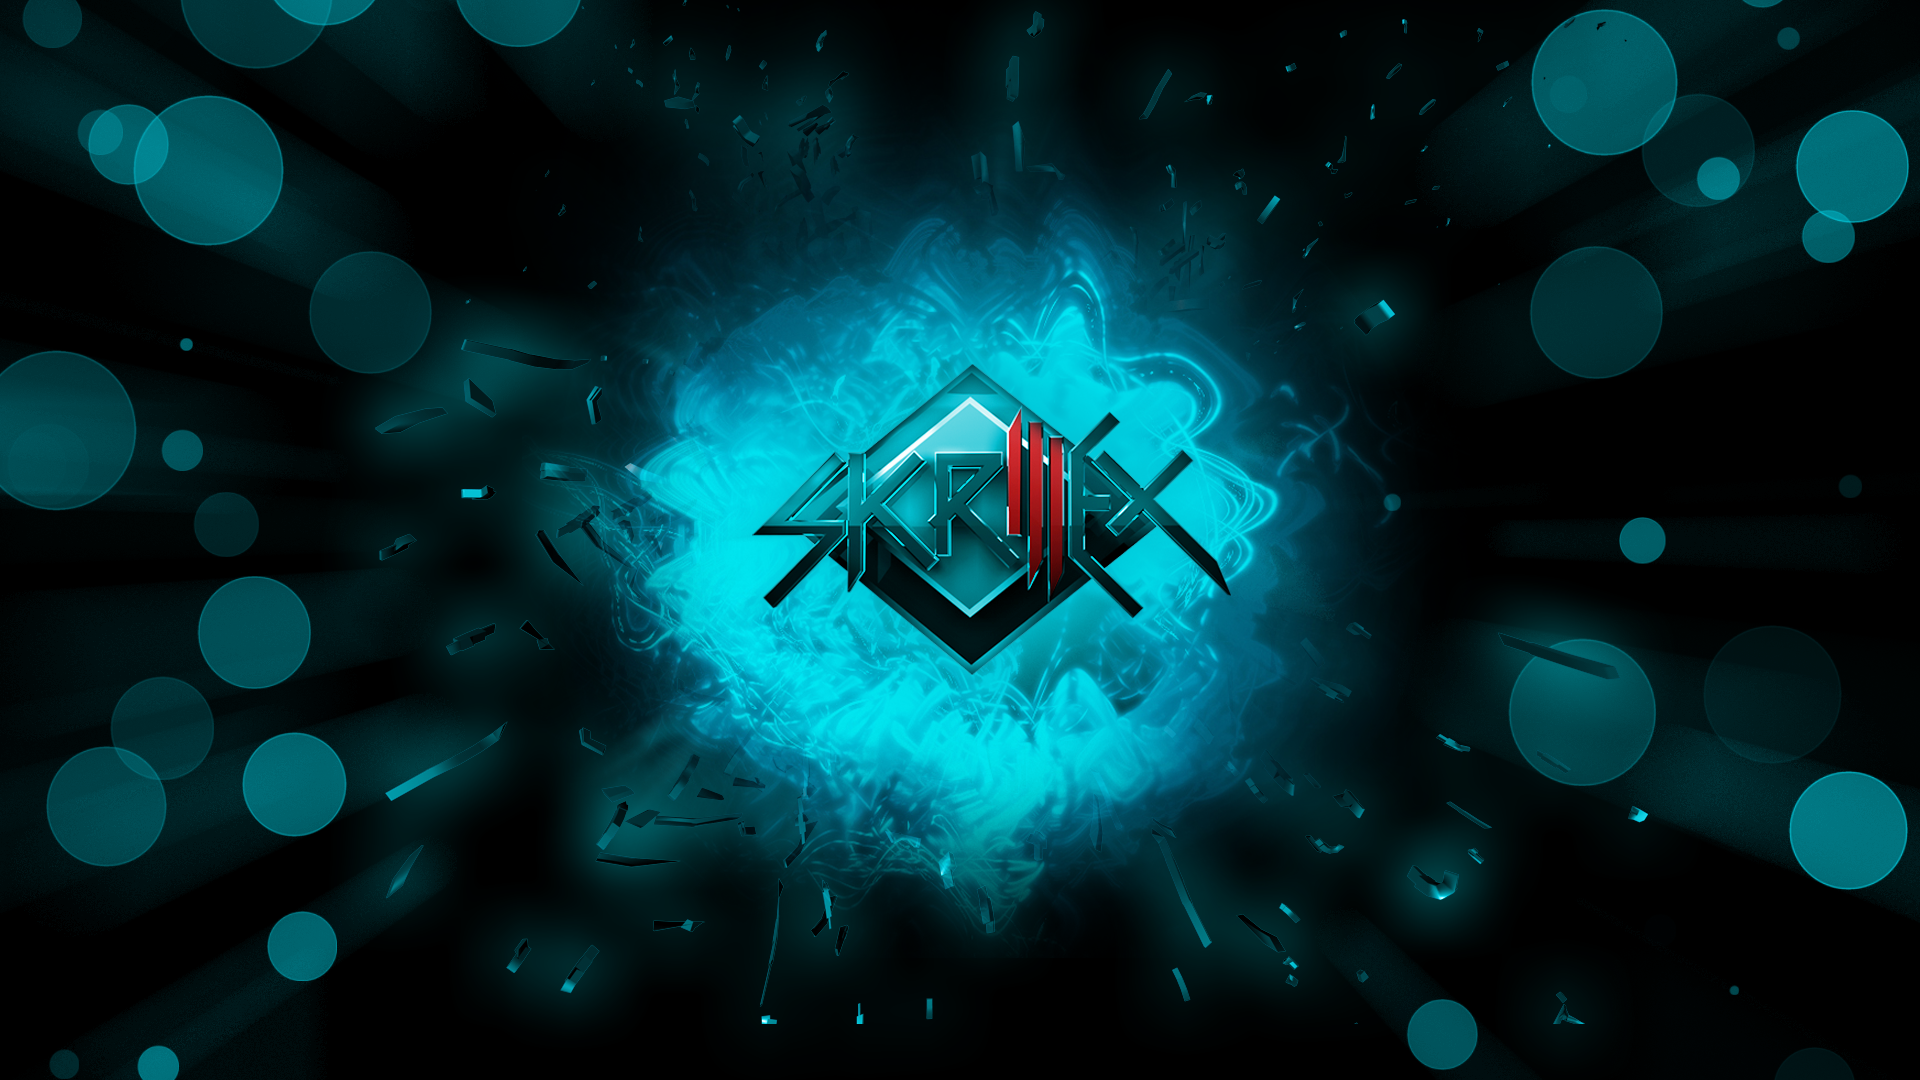 Wallpapers Skrillex